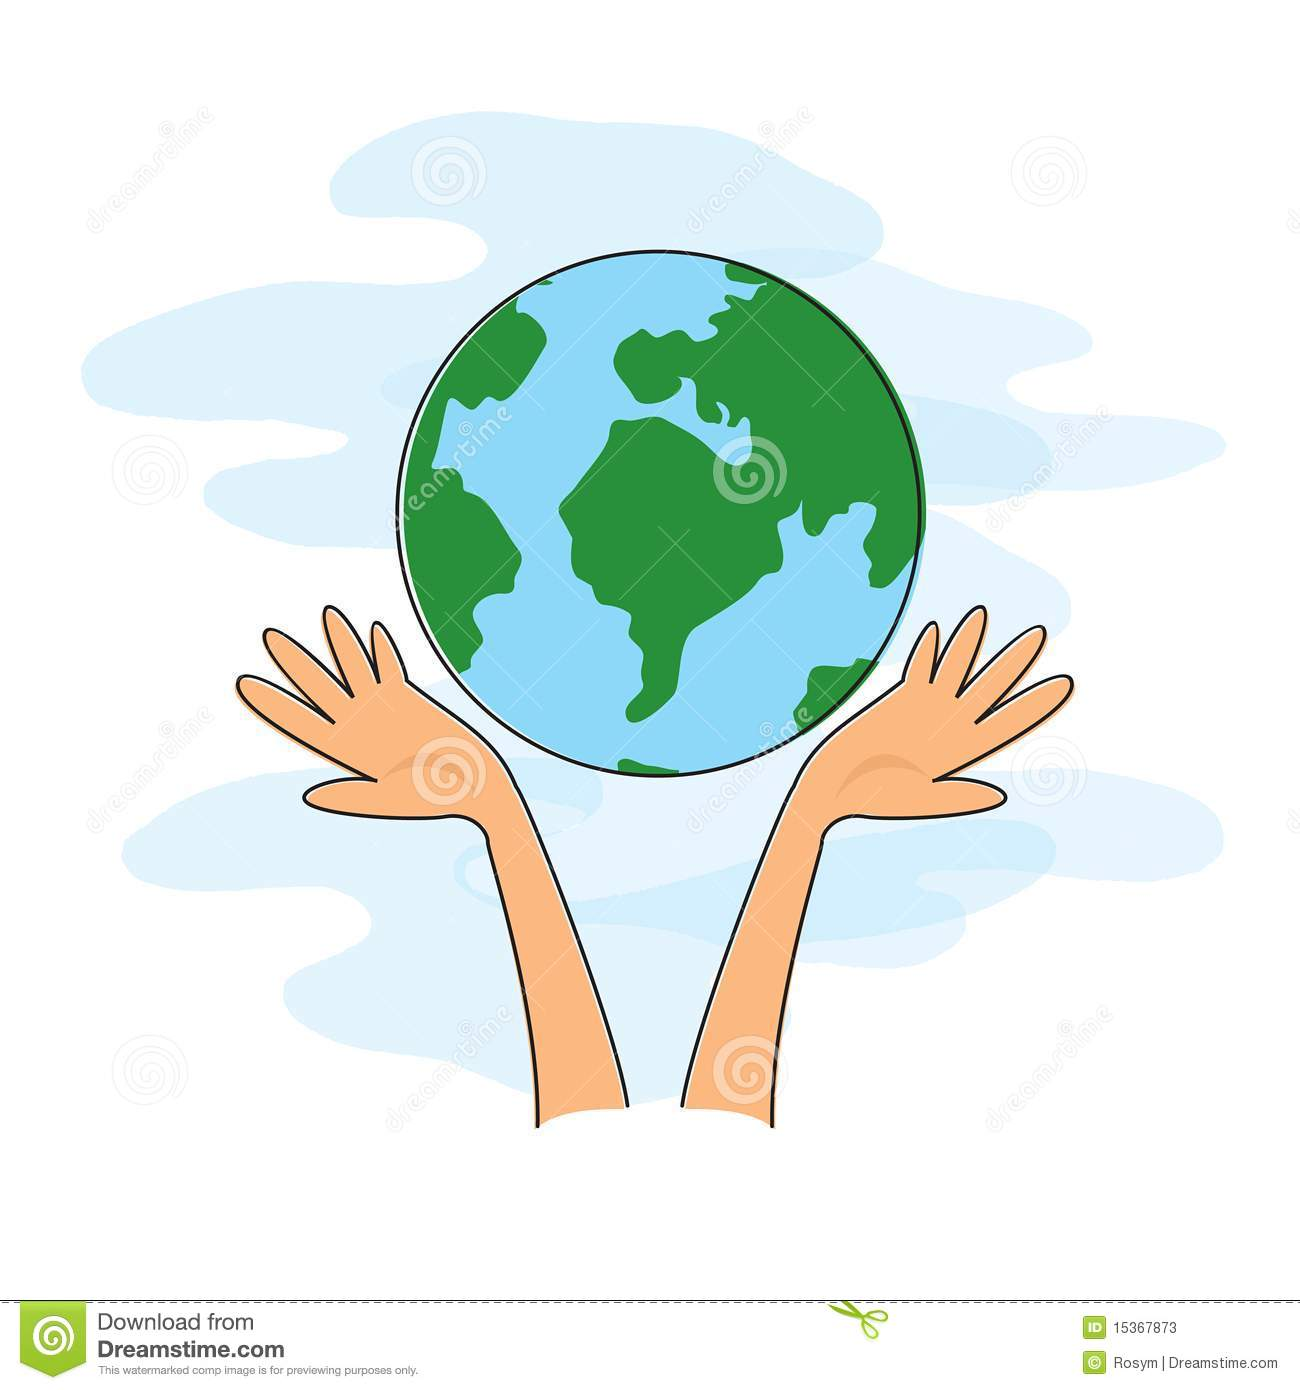 Two Hands Holding Globe Stock Illustrations.